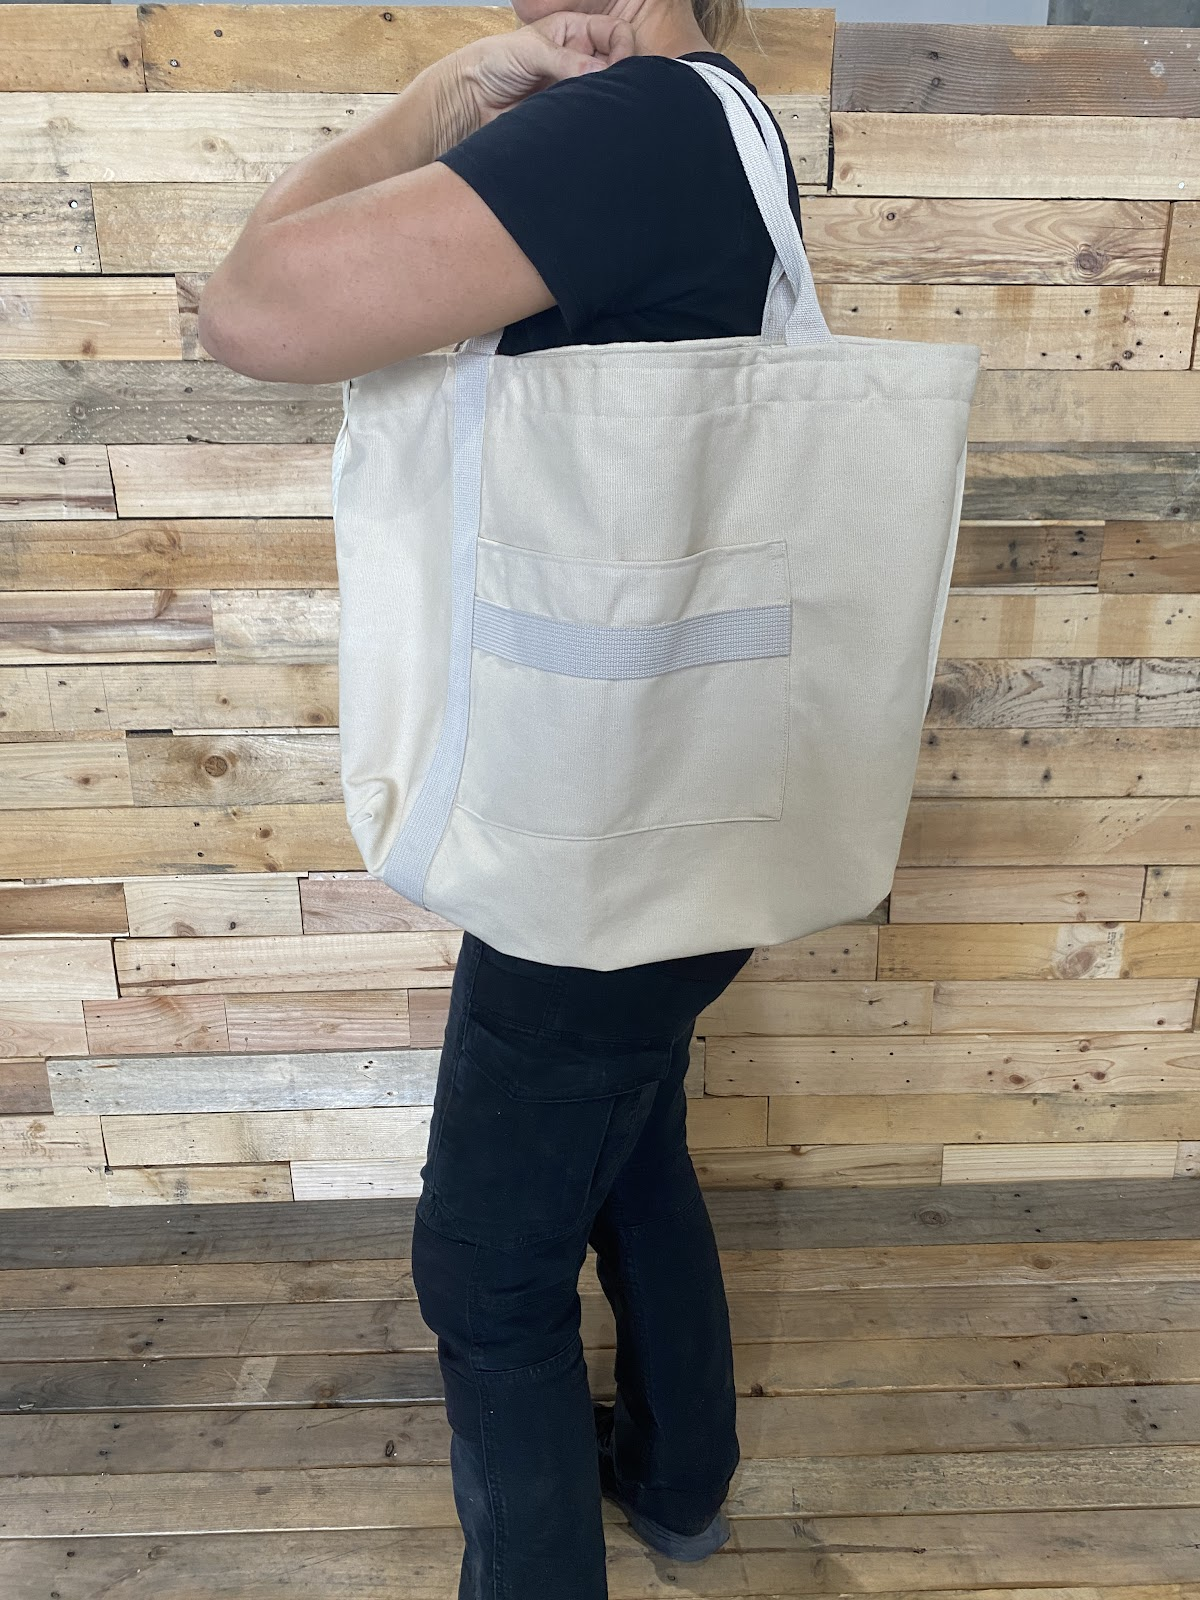 Upcycled Canvas Creations - Tote Bags